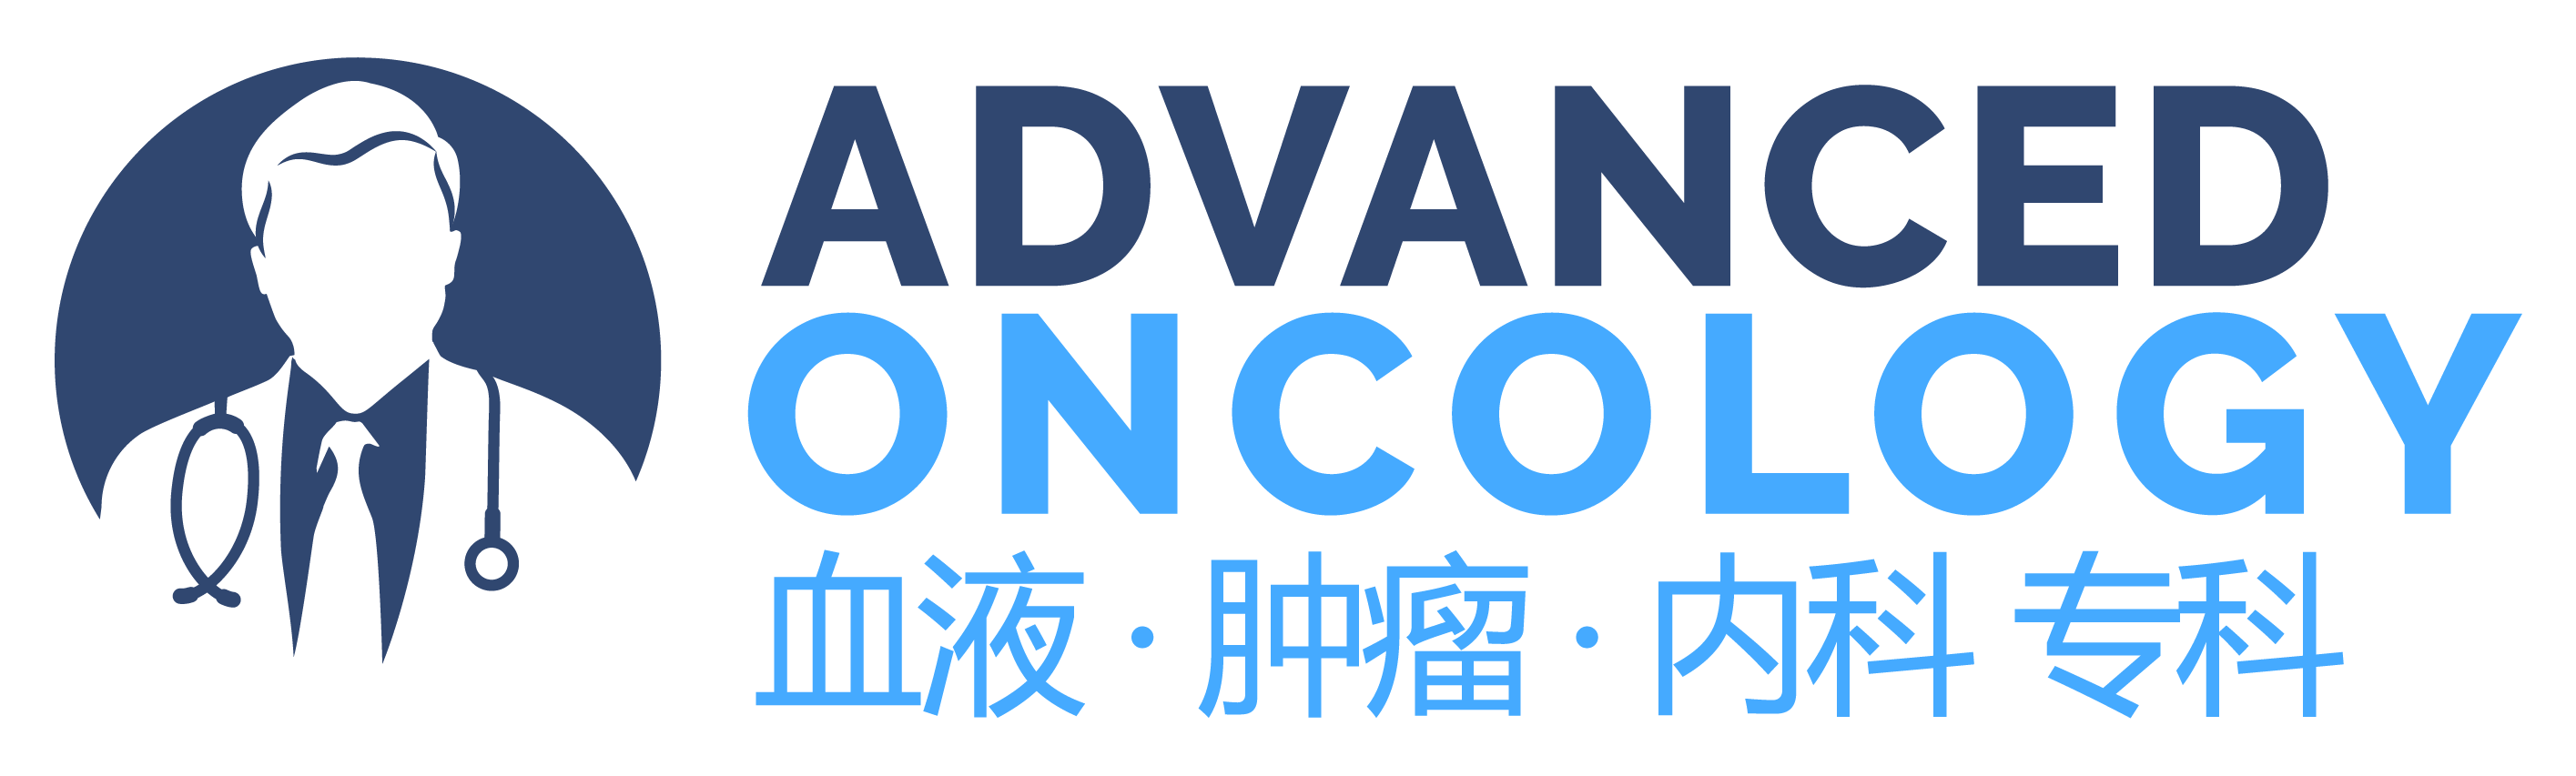 ADVANCED ONCOLOGY